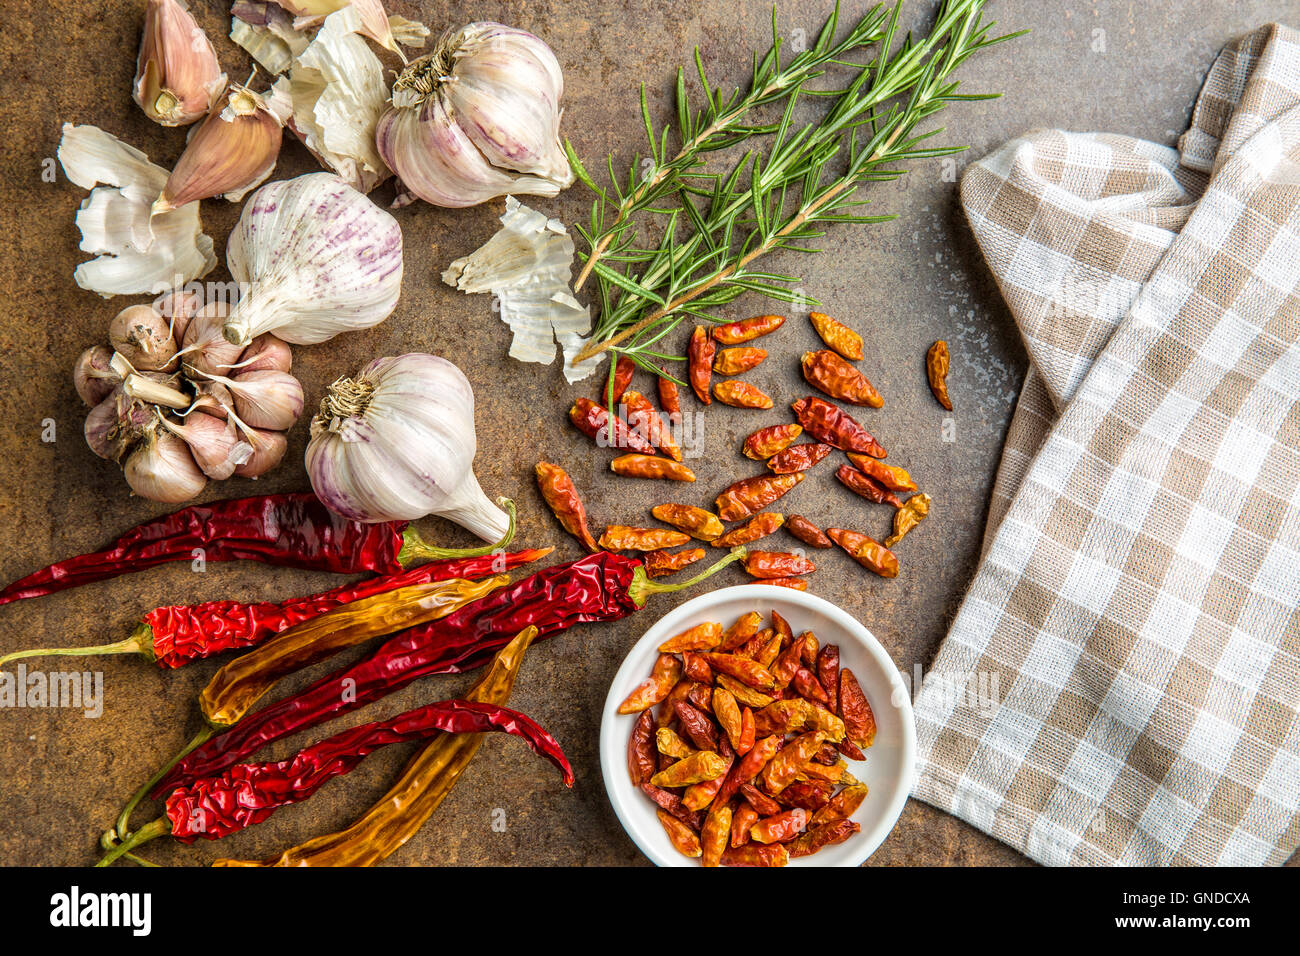 Garlic, chili peppers and rosemary. Top view. Stock Photo